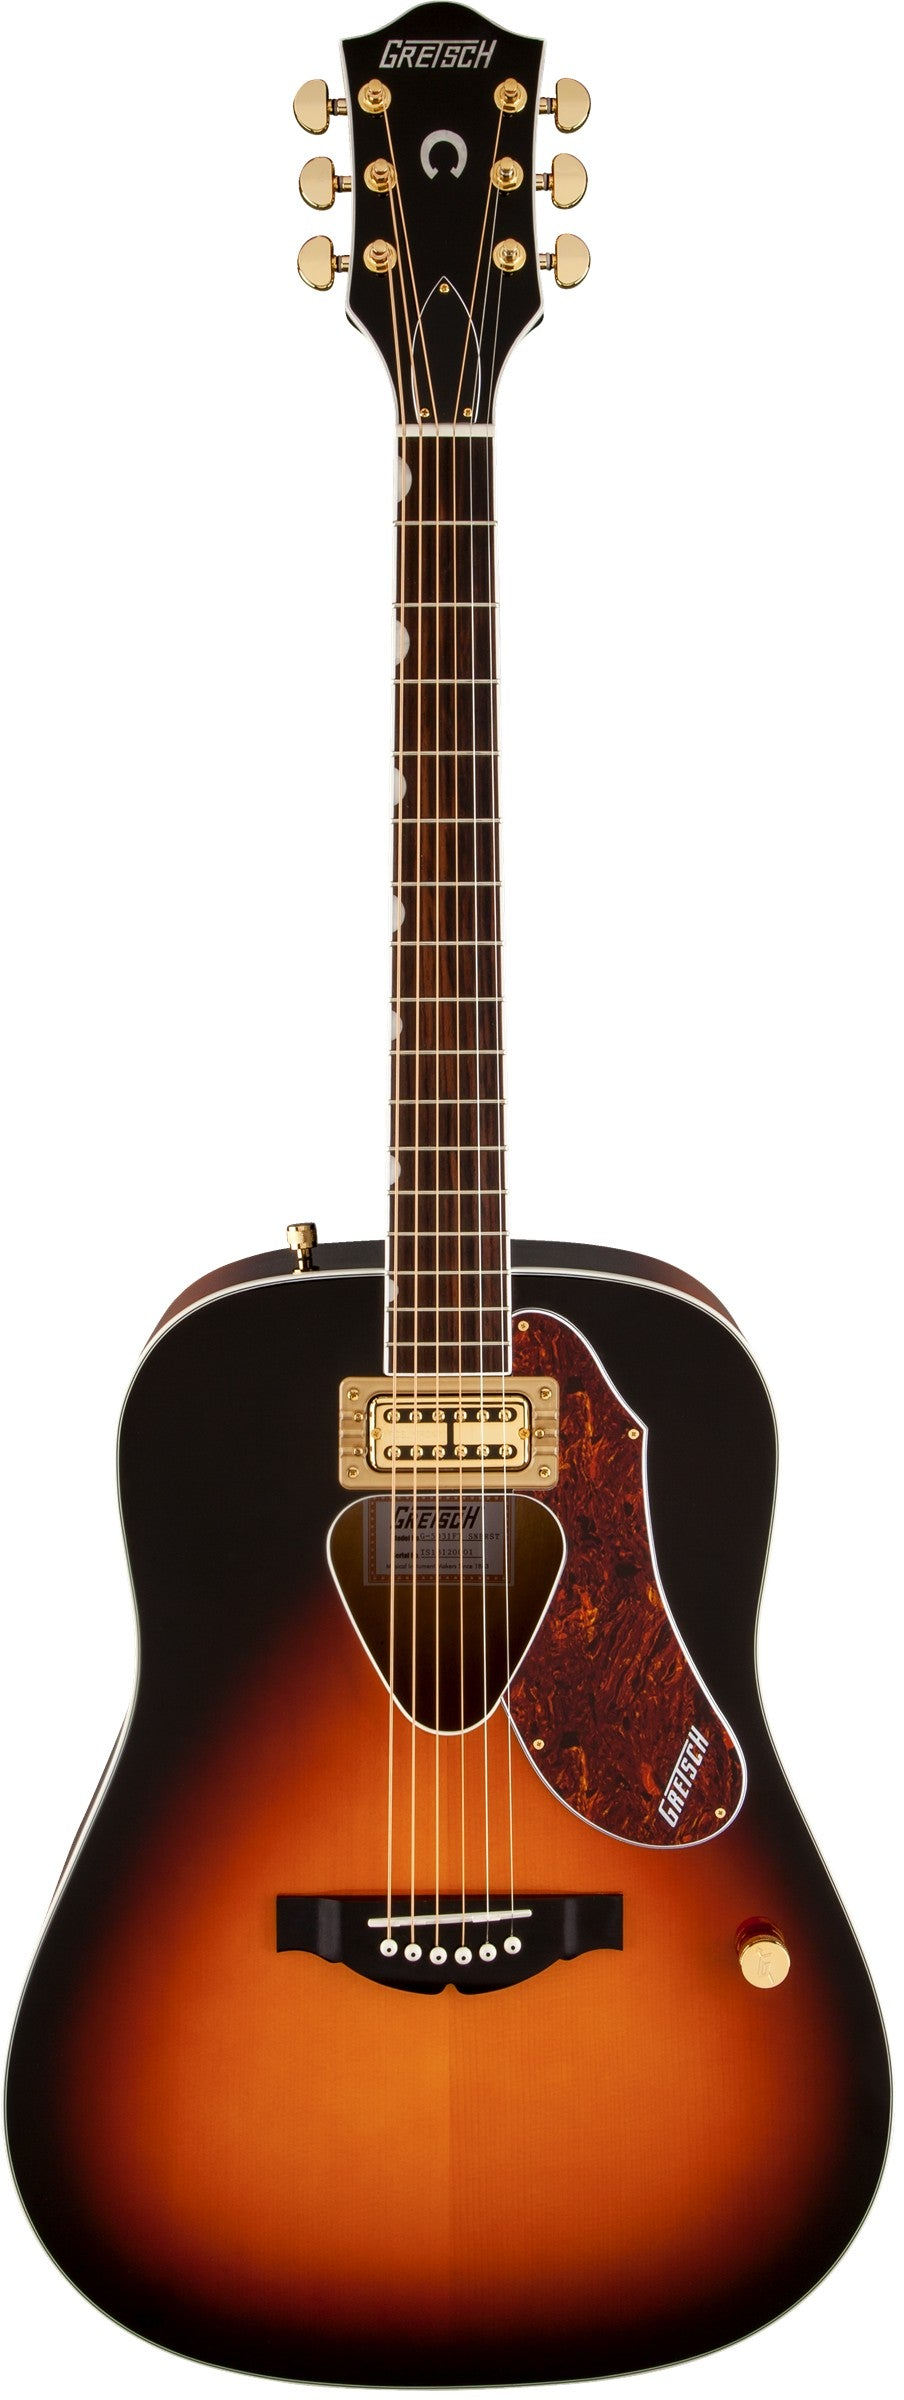 Gretsch Rancher Dreadnought Acoustic Electric Guitar w/ Fideli'Tron Pickup - Sunburst